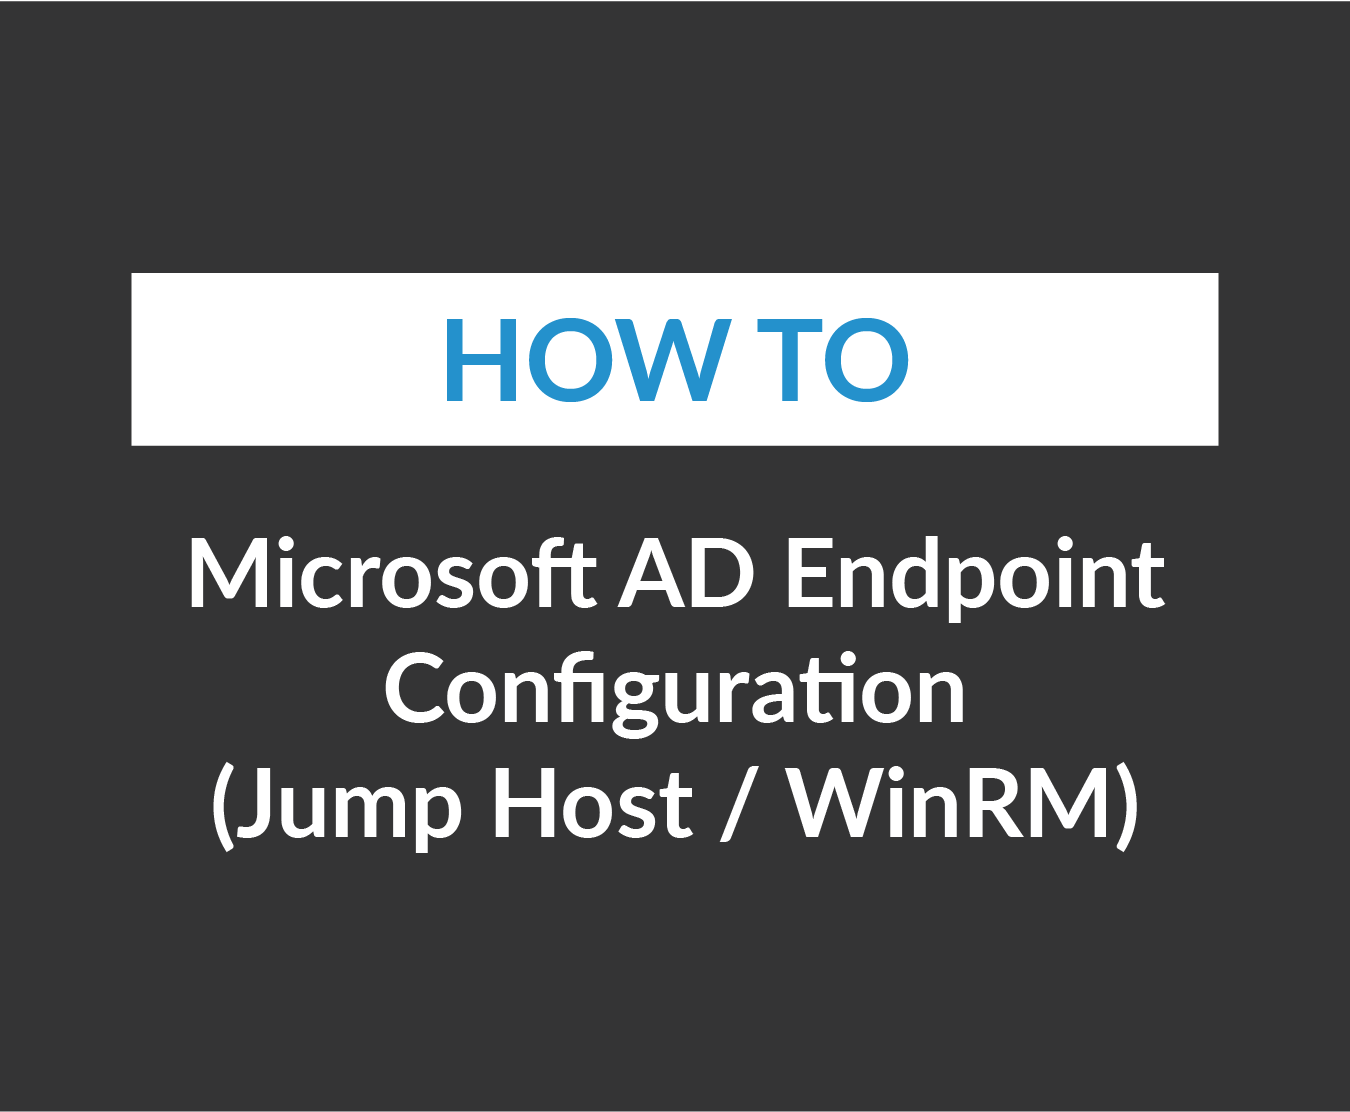 Microsoft AD Endpoint Configuration